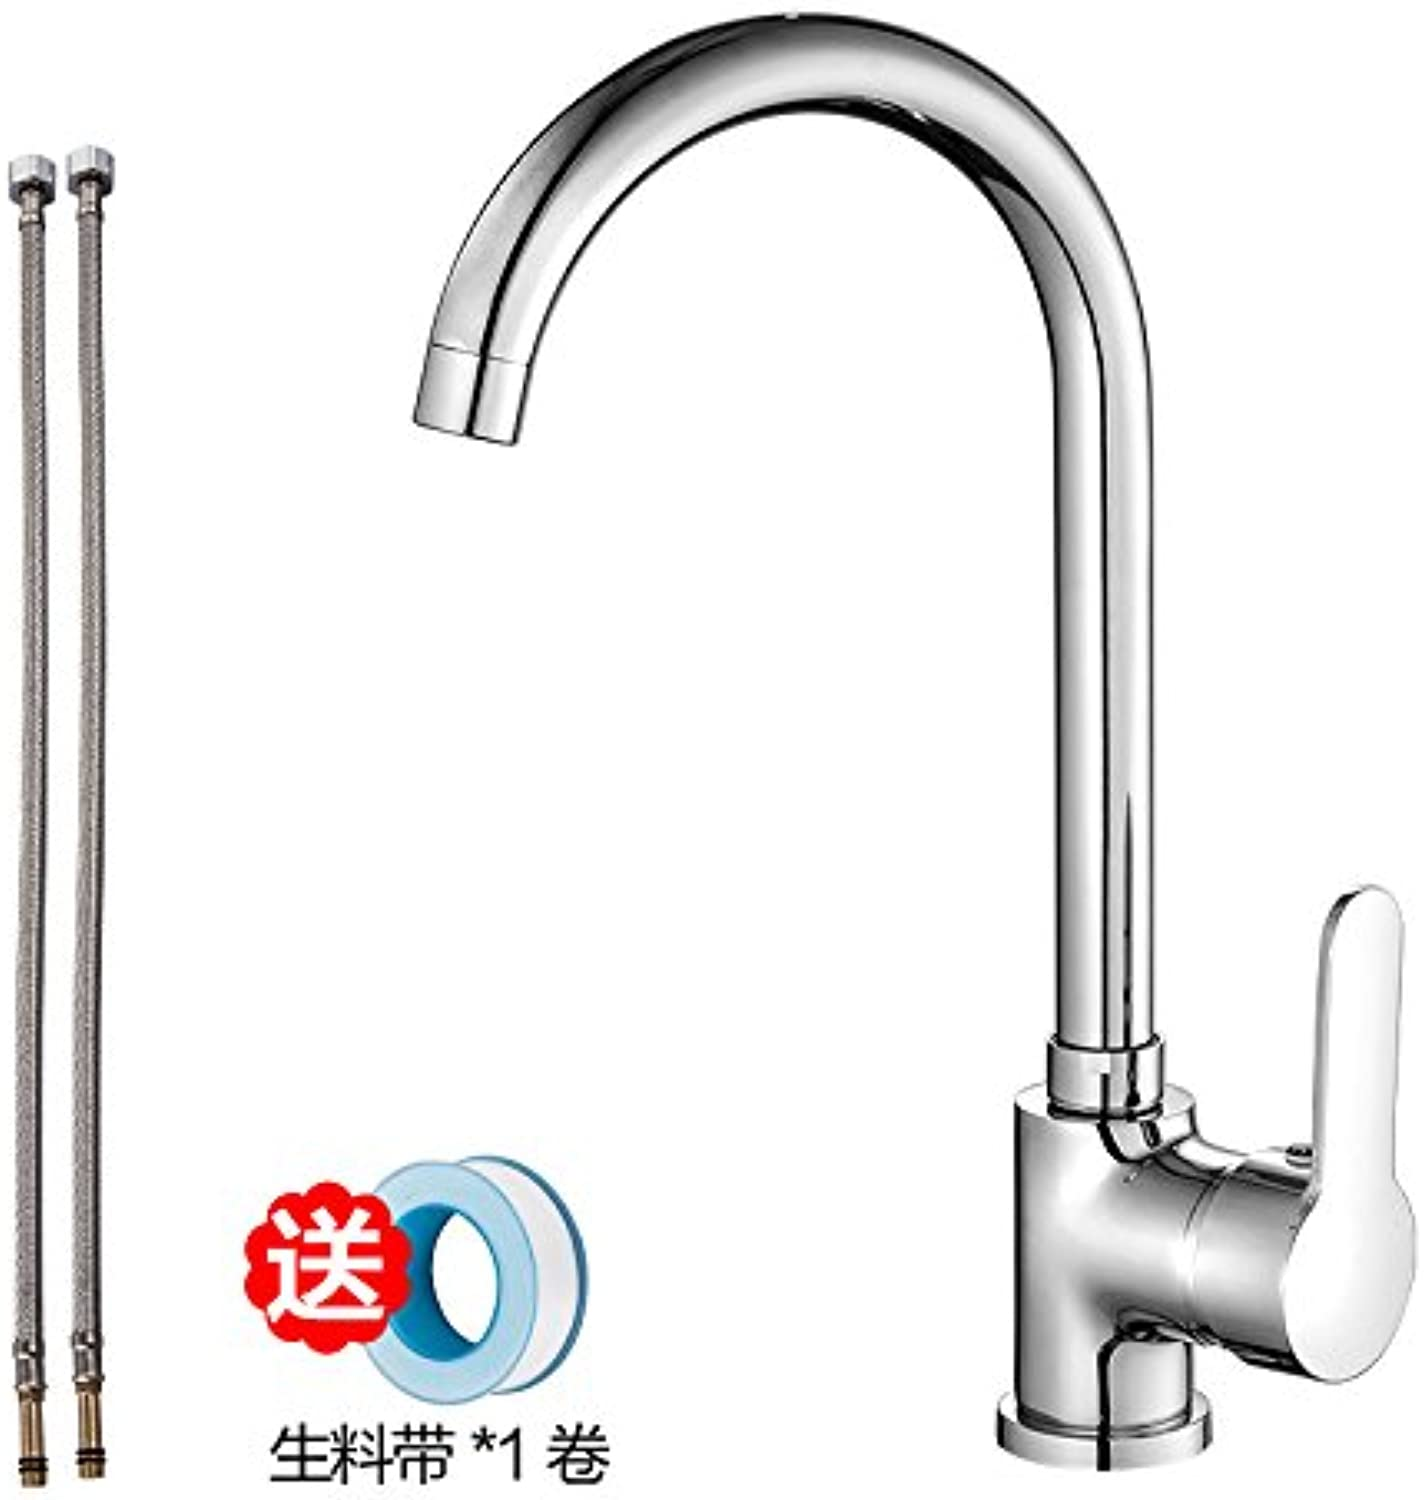 JWLTfull copper body kitchen faucet hot and cold washing basin, laundry pool, cooling and heating, universal redary, wash and wash,Cold and hot dishes, big bend faucet60cm inlet pipe